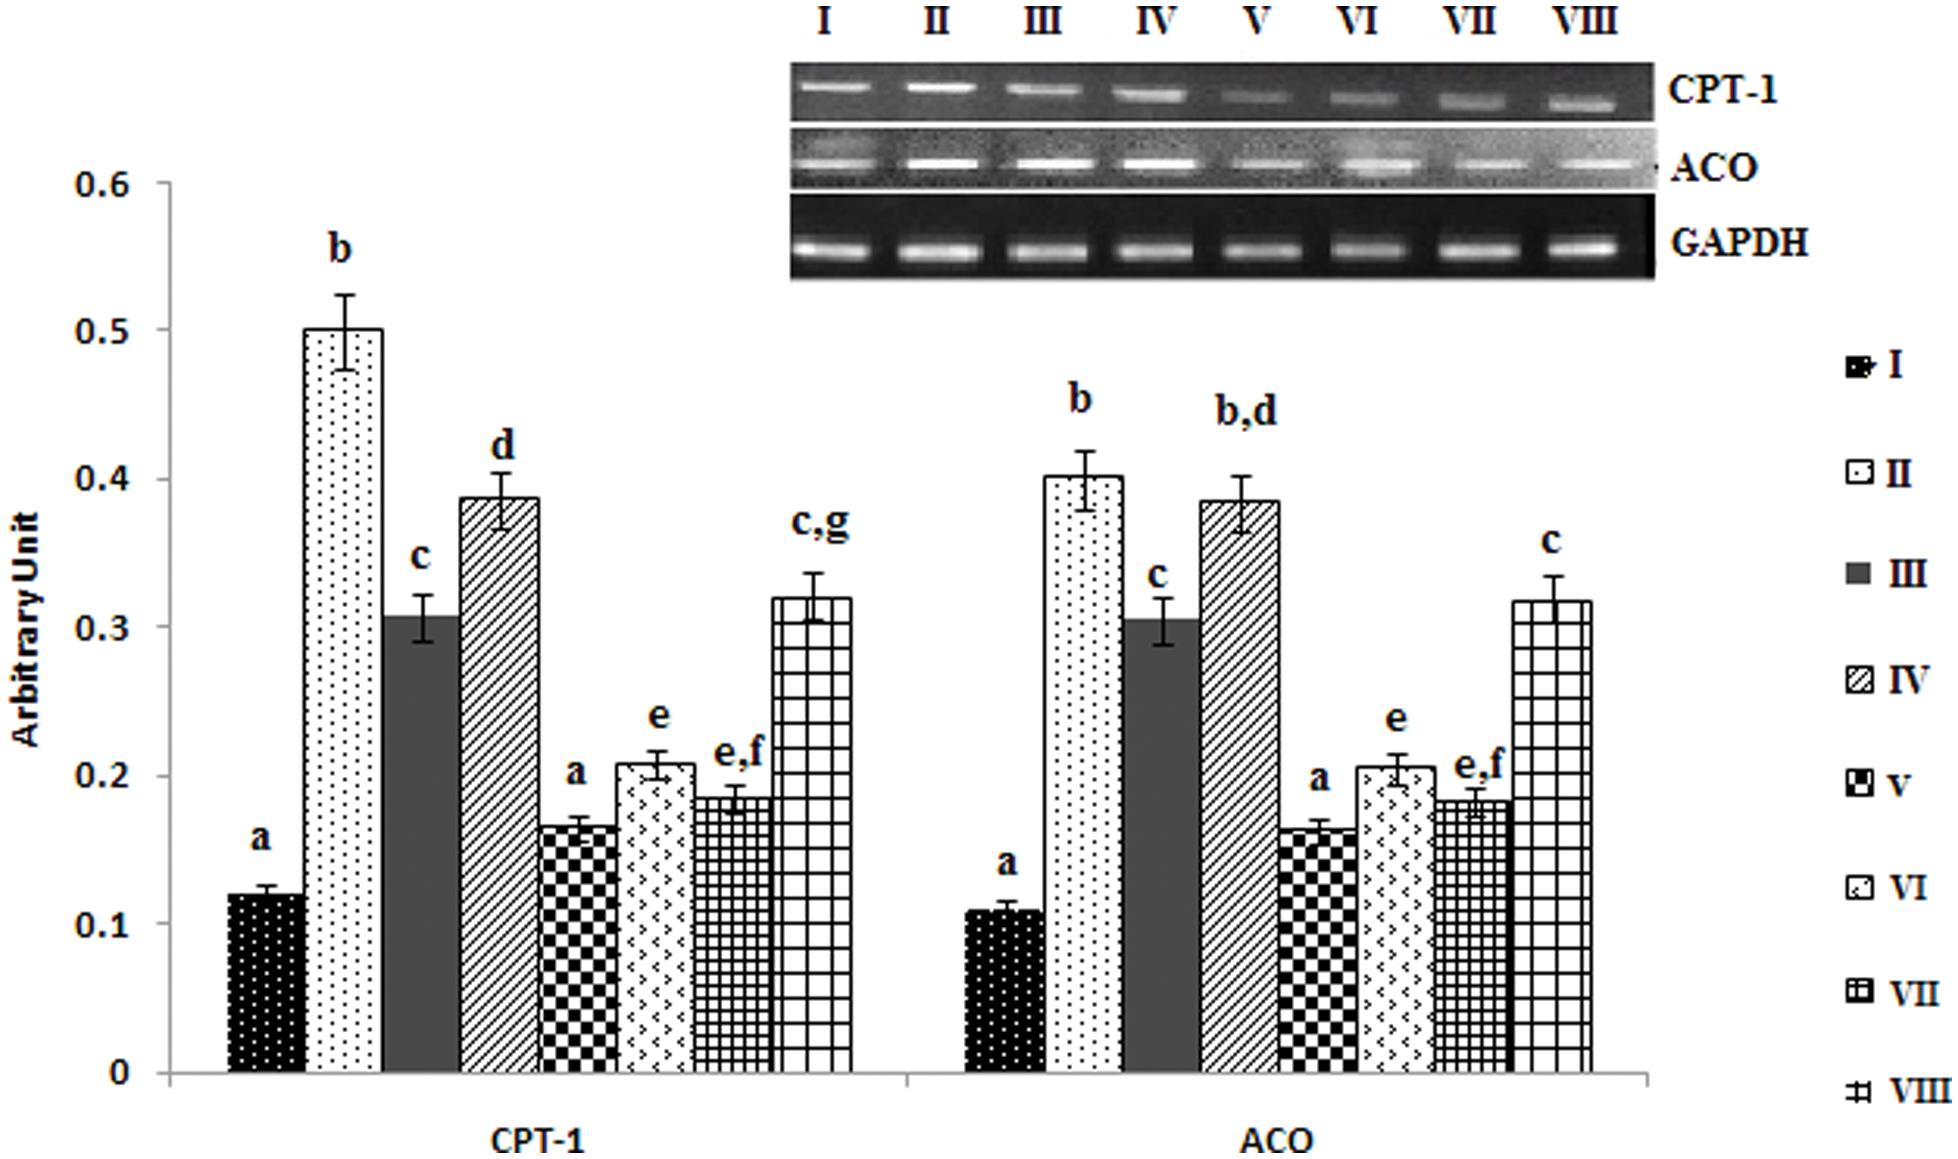 Effect of PPARα ligands on fatty acid mediated mRNA expression of carnitine palmitoyl transferase I and acyl CoA oxidase in hepatocytes.